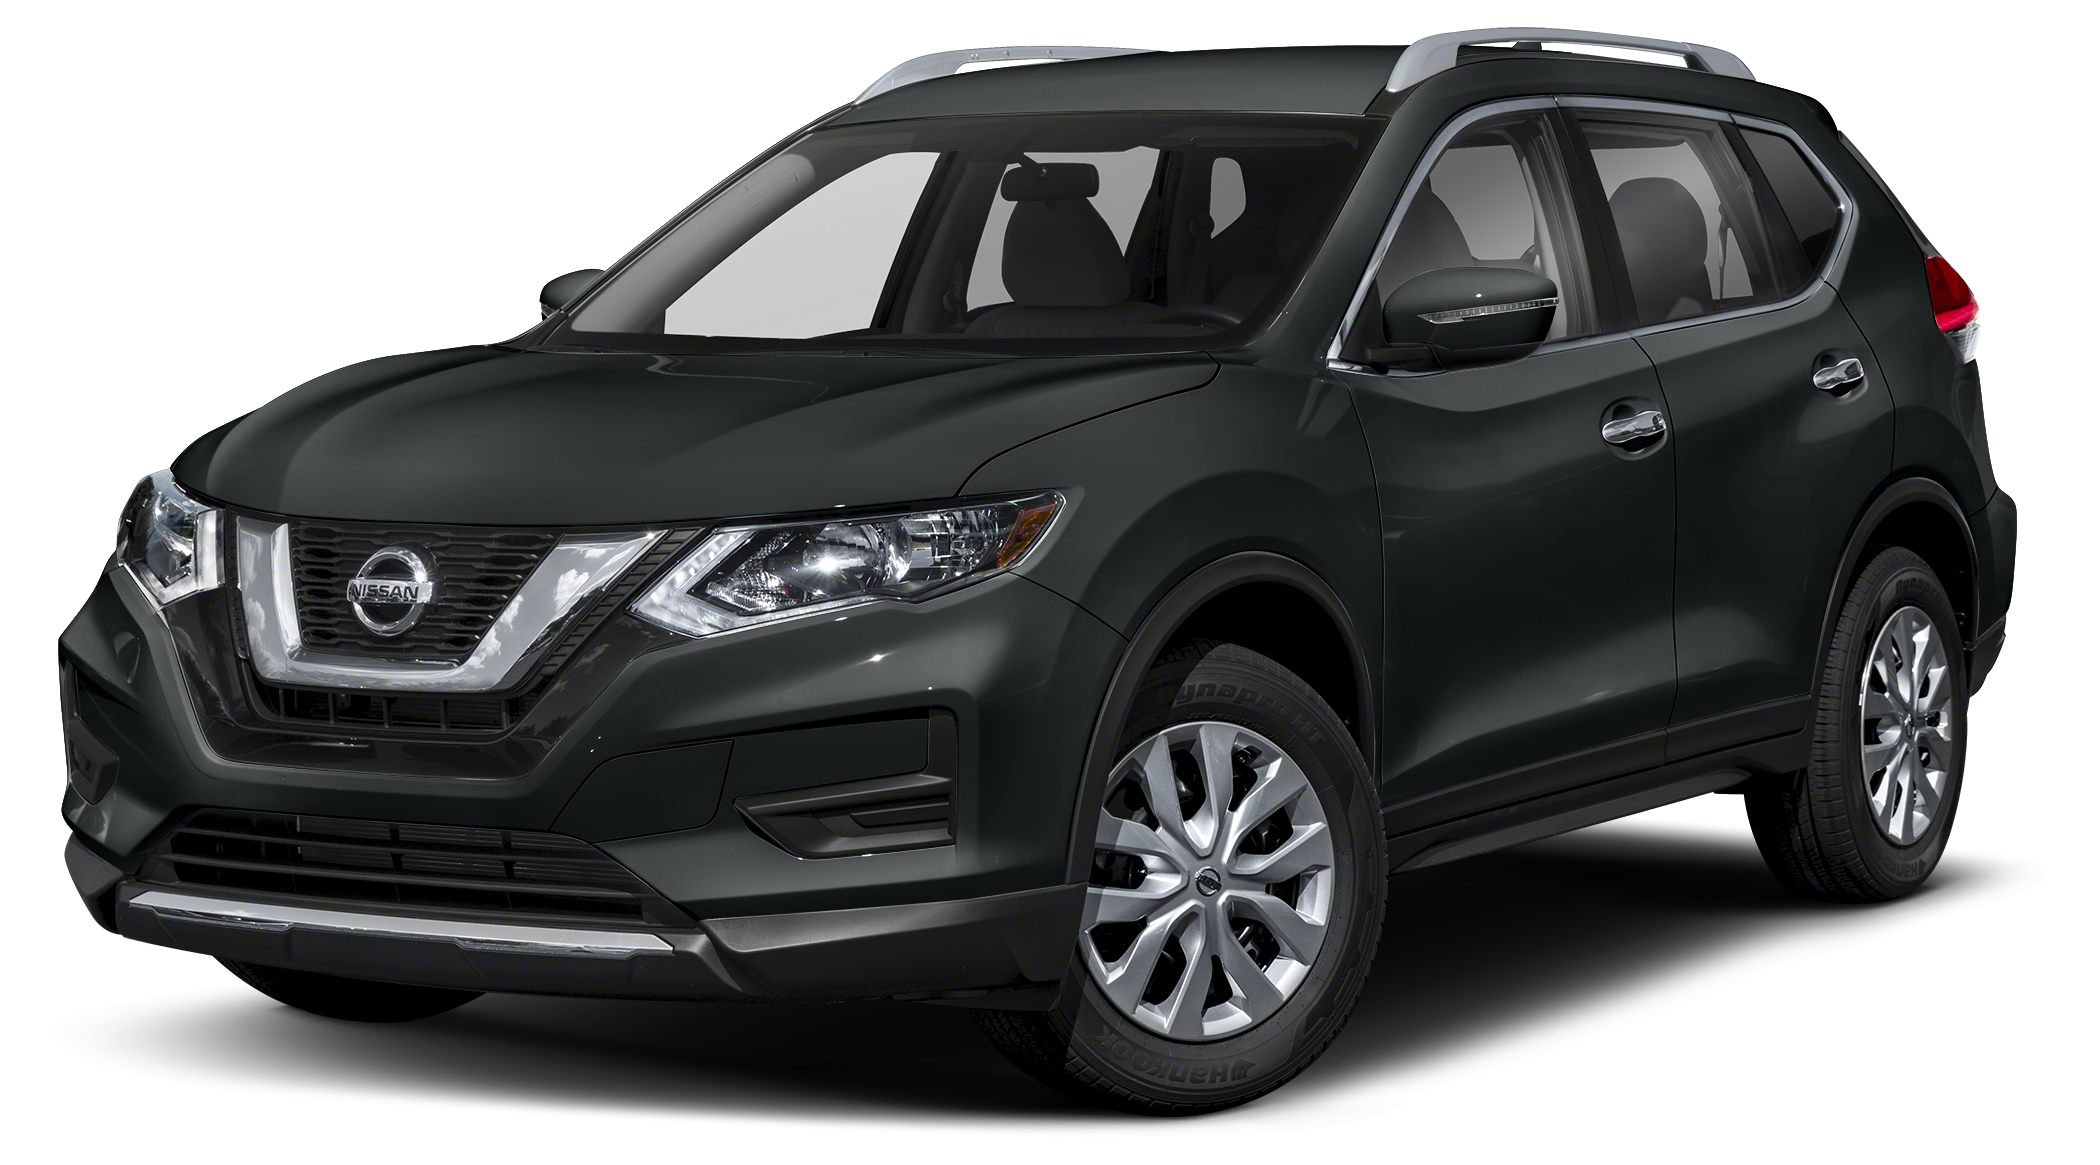 2017 Nissan Rogue S This 2017 Nissan ROGUE S will sell fast Bluetooth Save money at the pumps